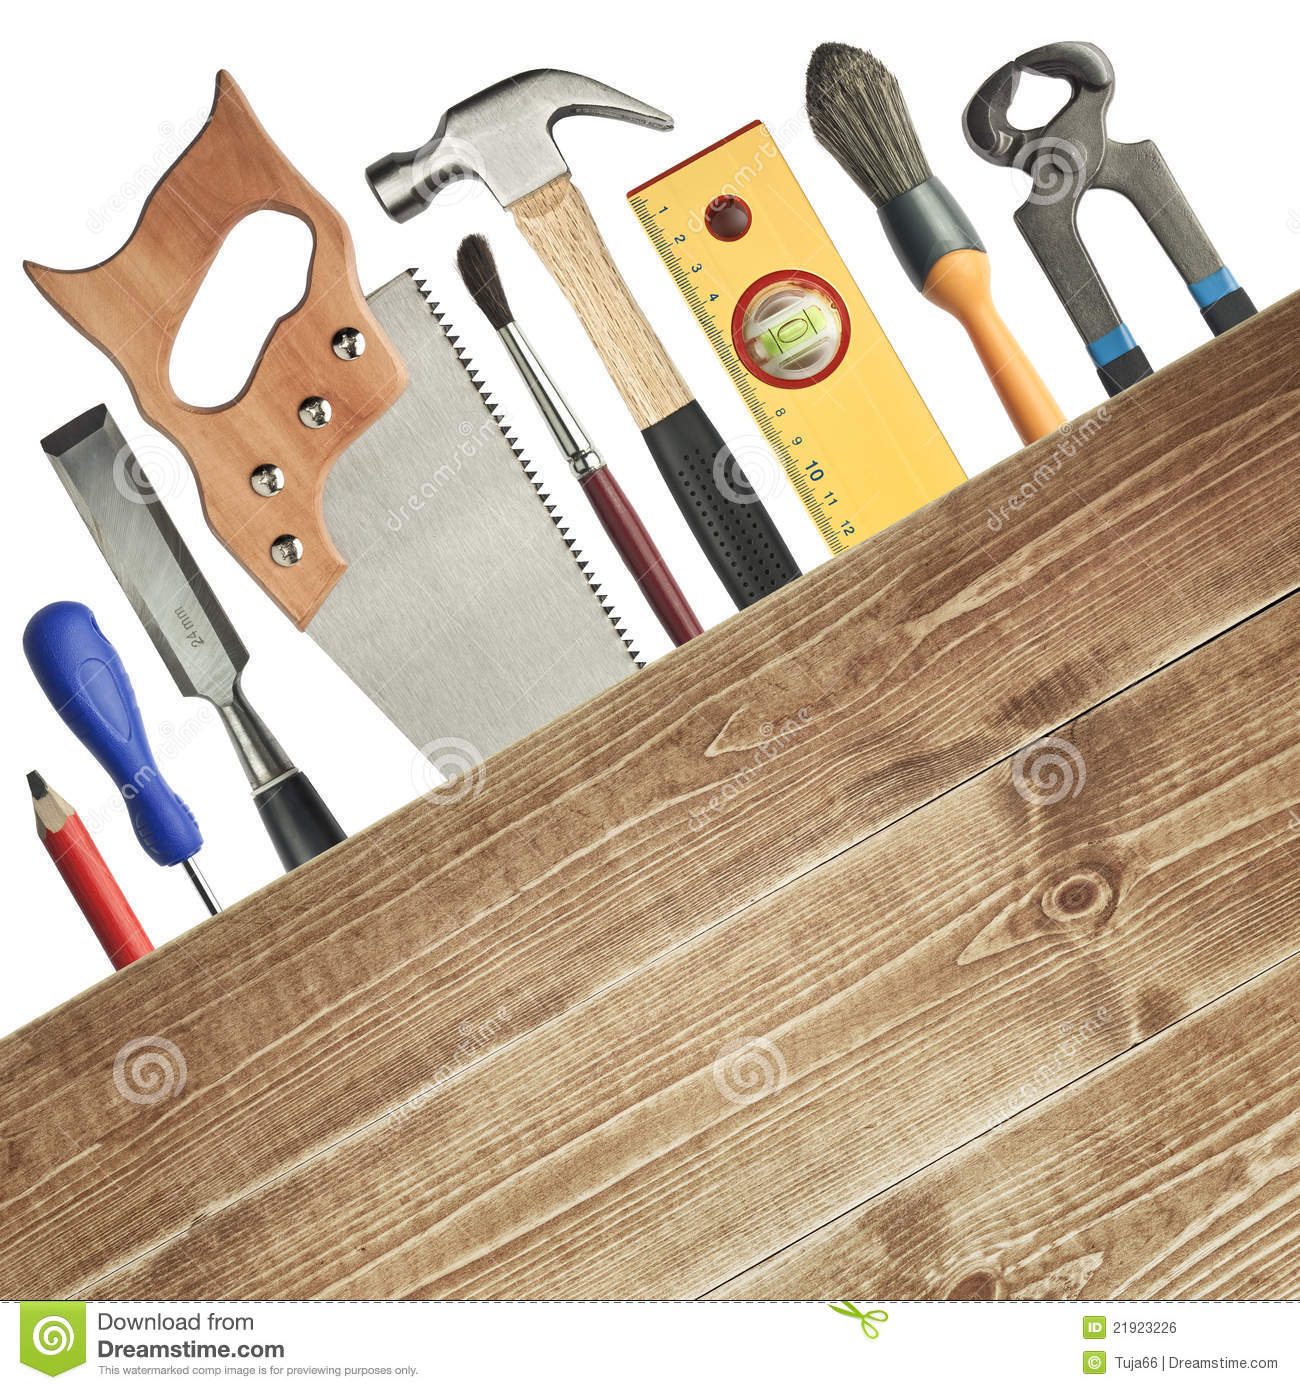 Carpentry background - photo#9